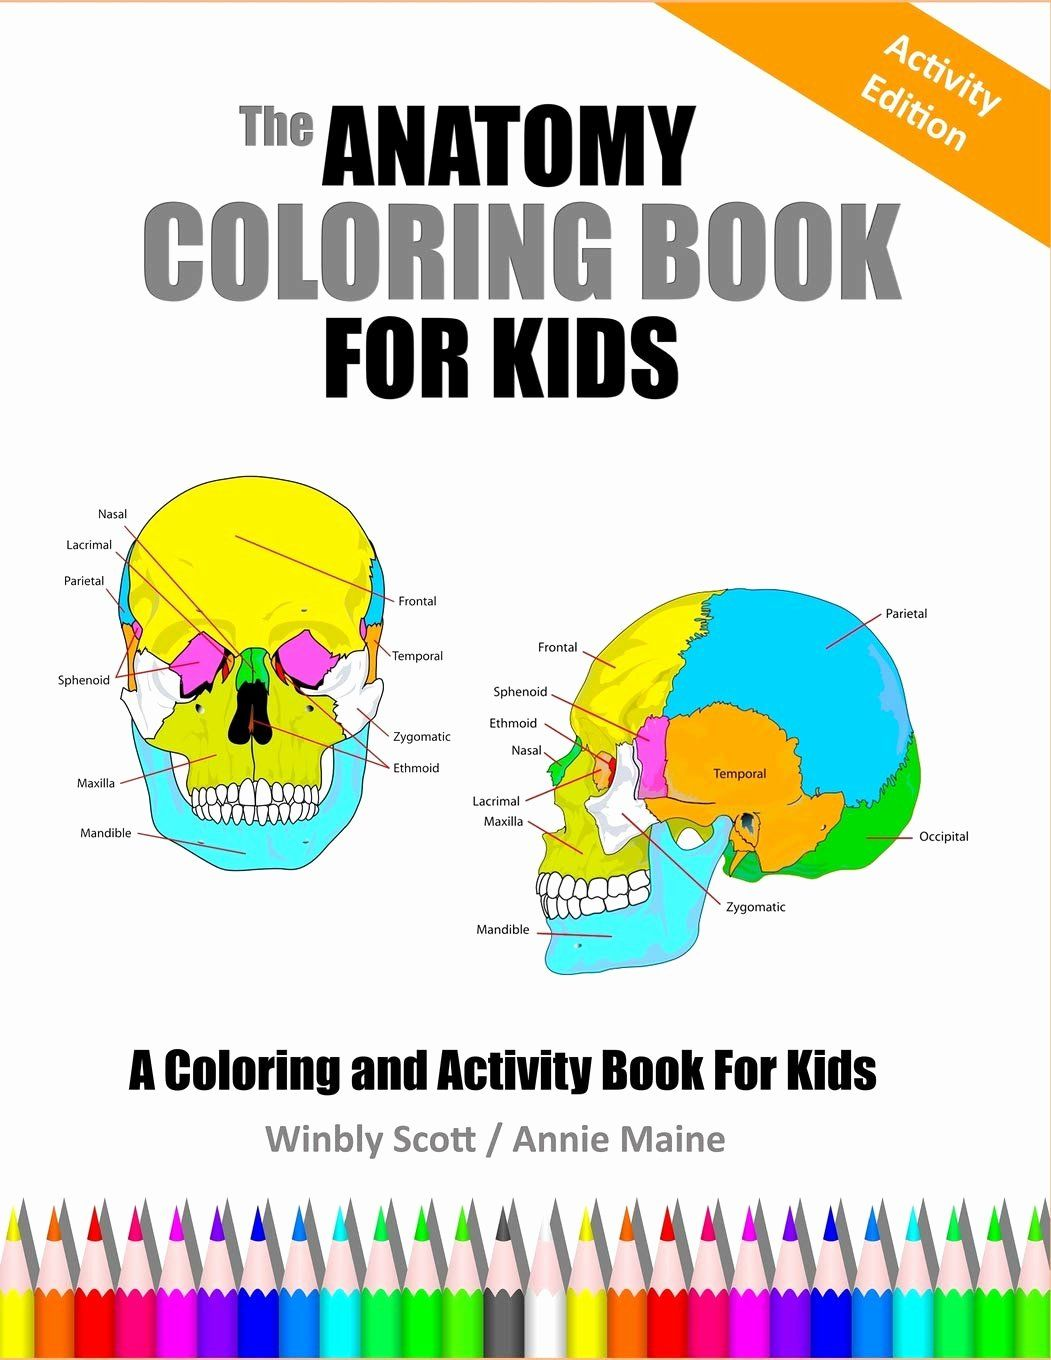 The Anatomy Coloring Book Beautiful Amazon The Anatomy Coloring Book For Kids A Coloring Anatomy Coloring Book Coloring Books Book Activities